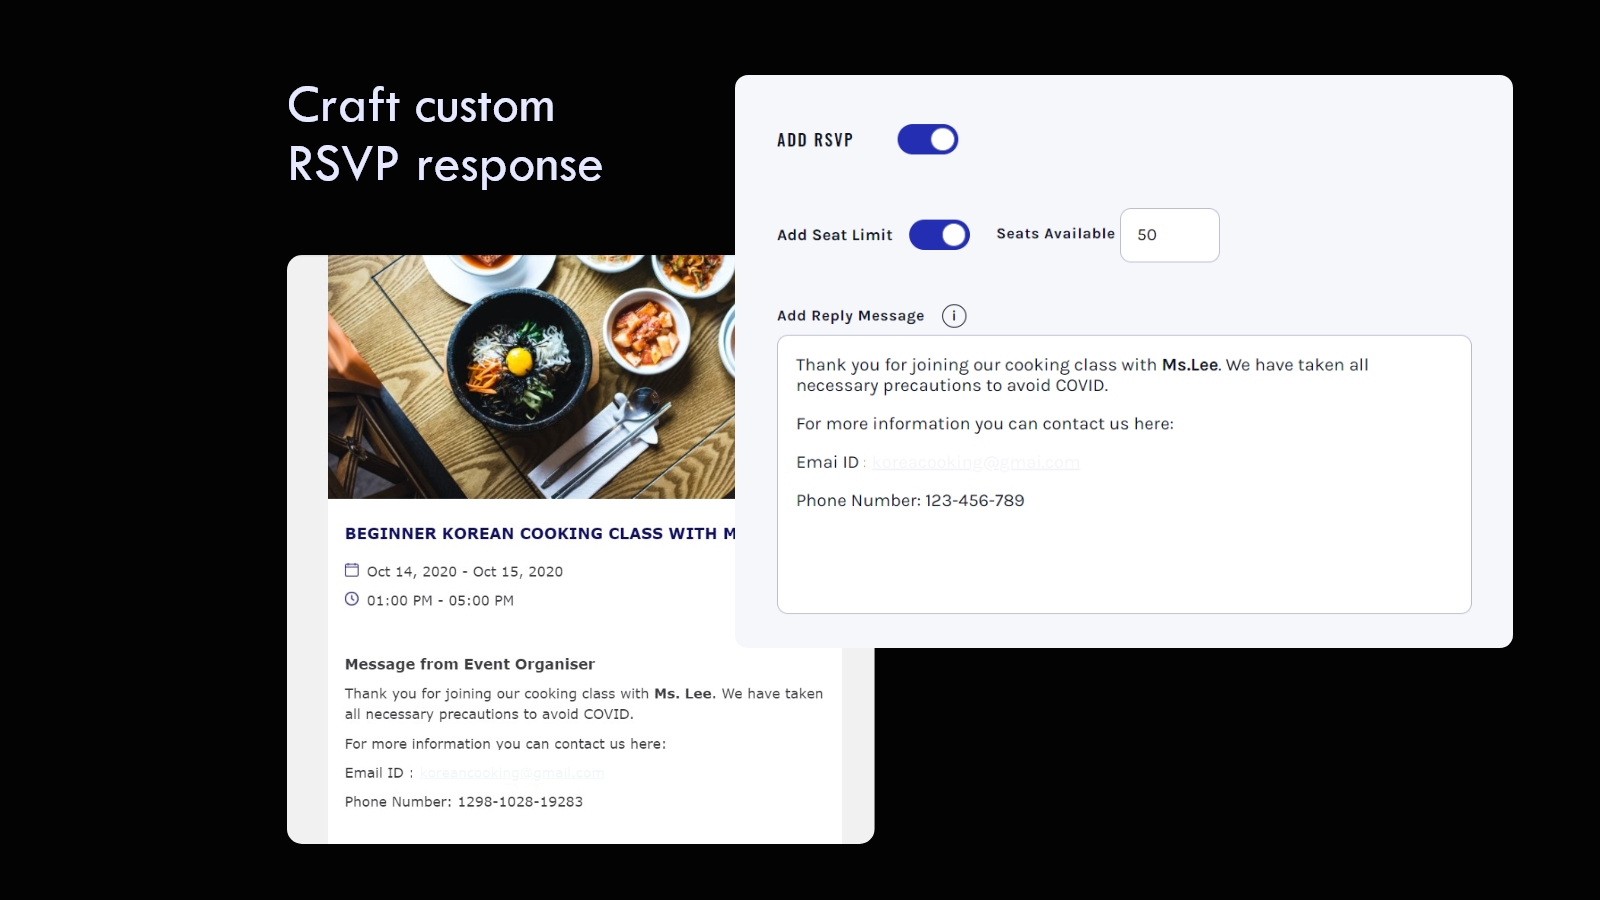 Has RSVP feature with customized email responses